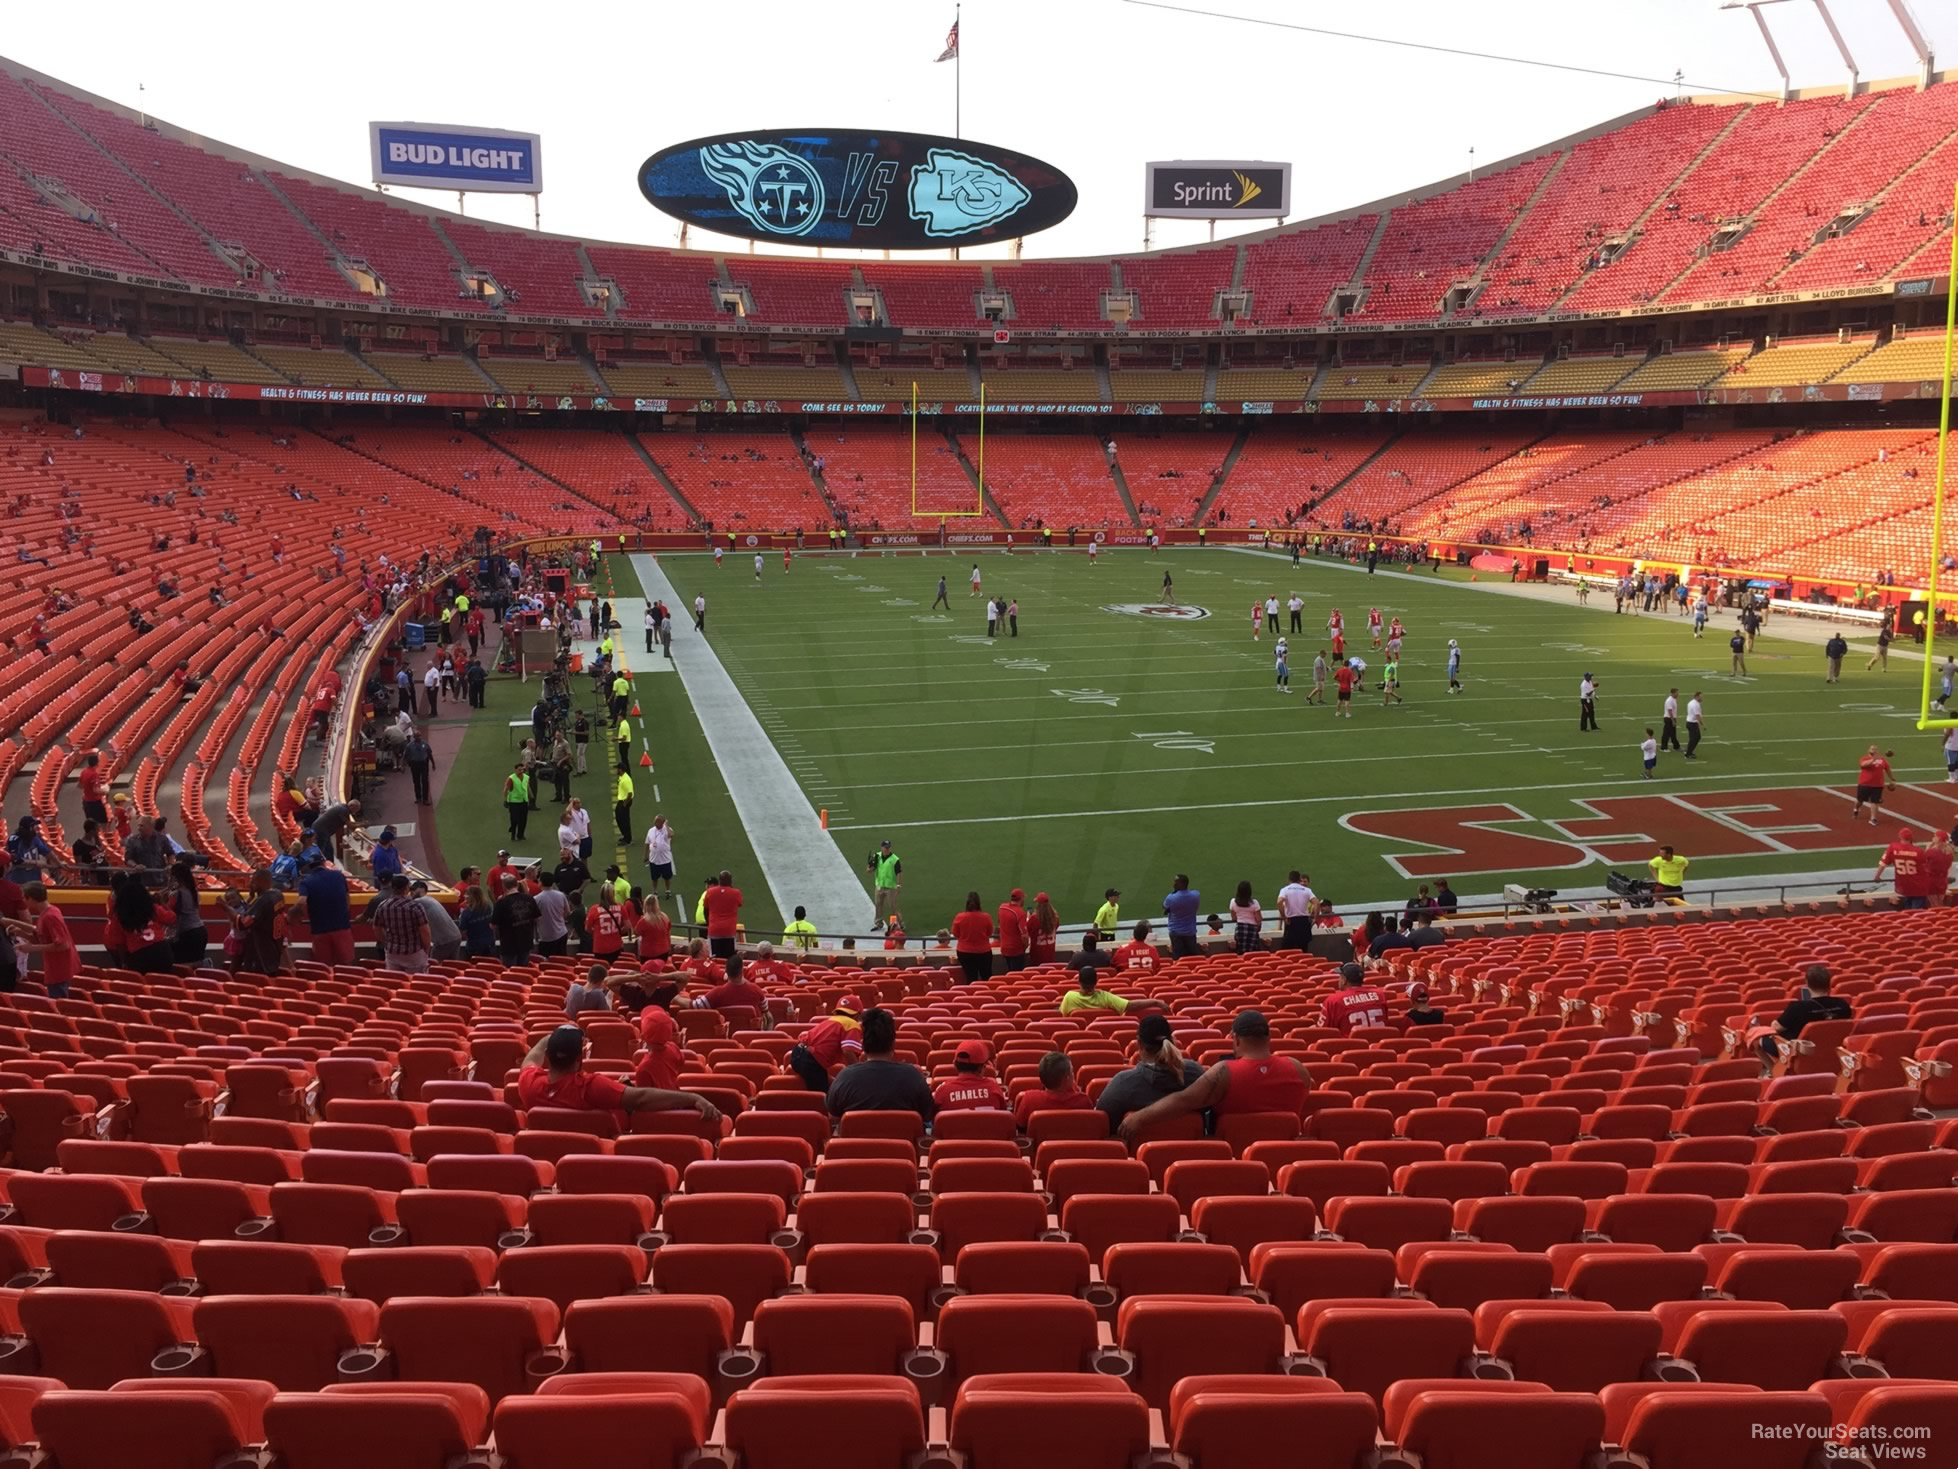 Seat View for Arrowhead Stadium Section 112, Row 30